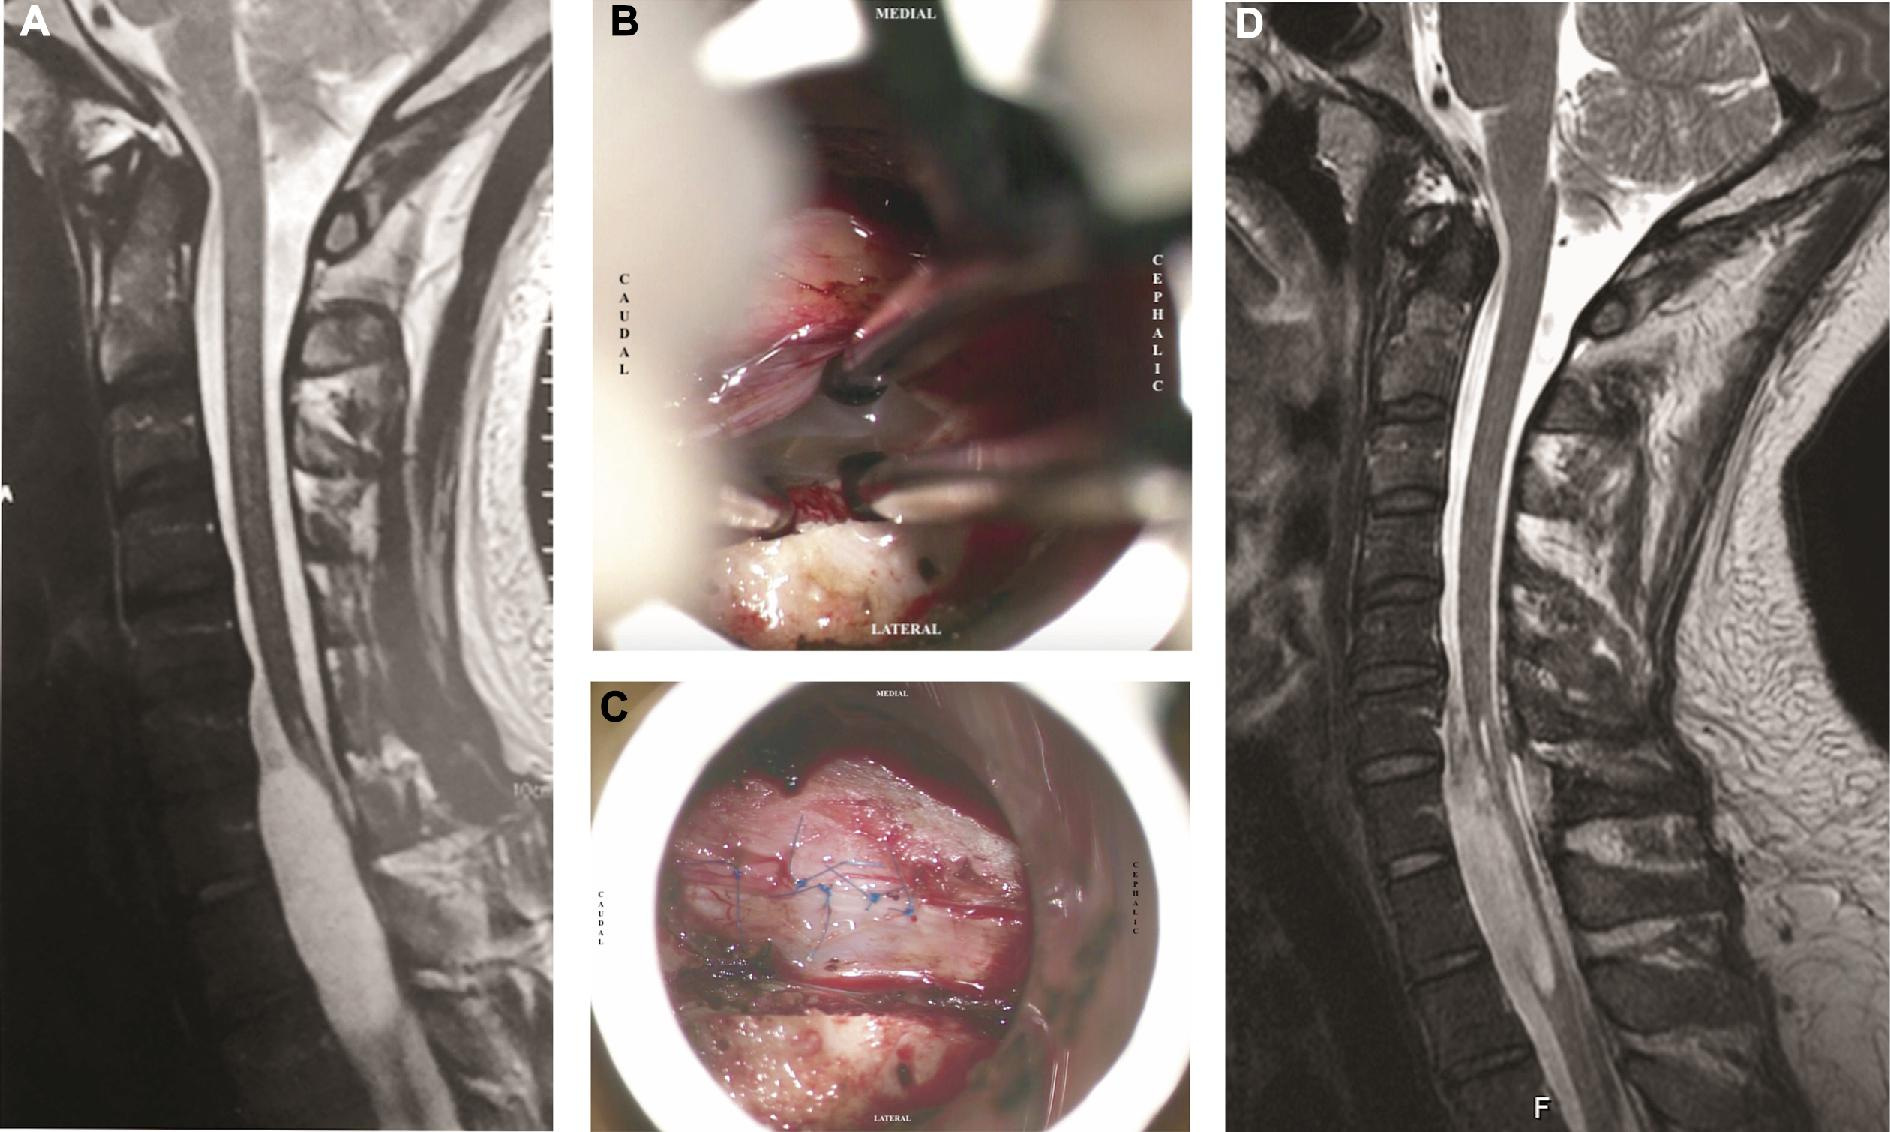 The cyst was observed and fenestrated